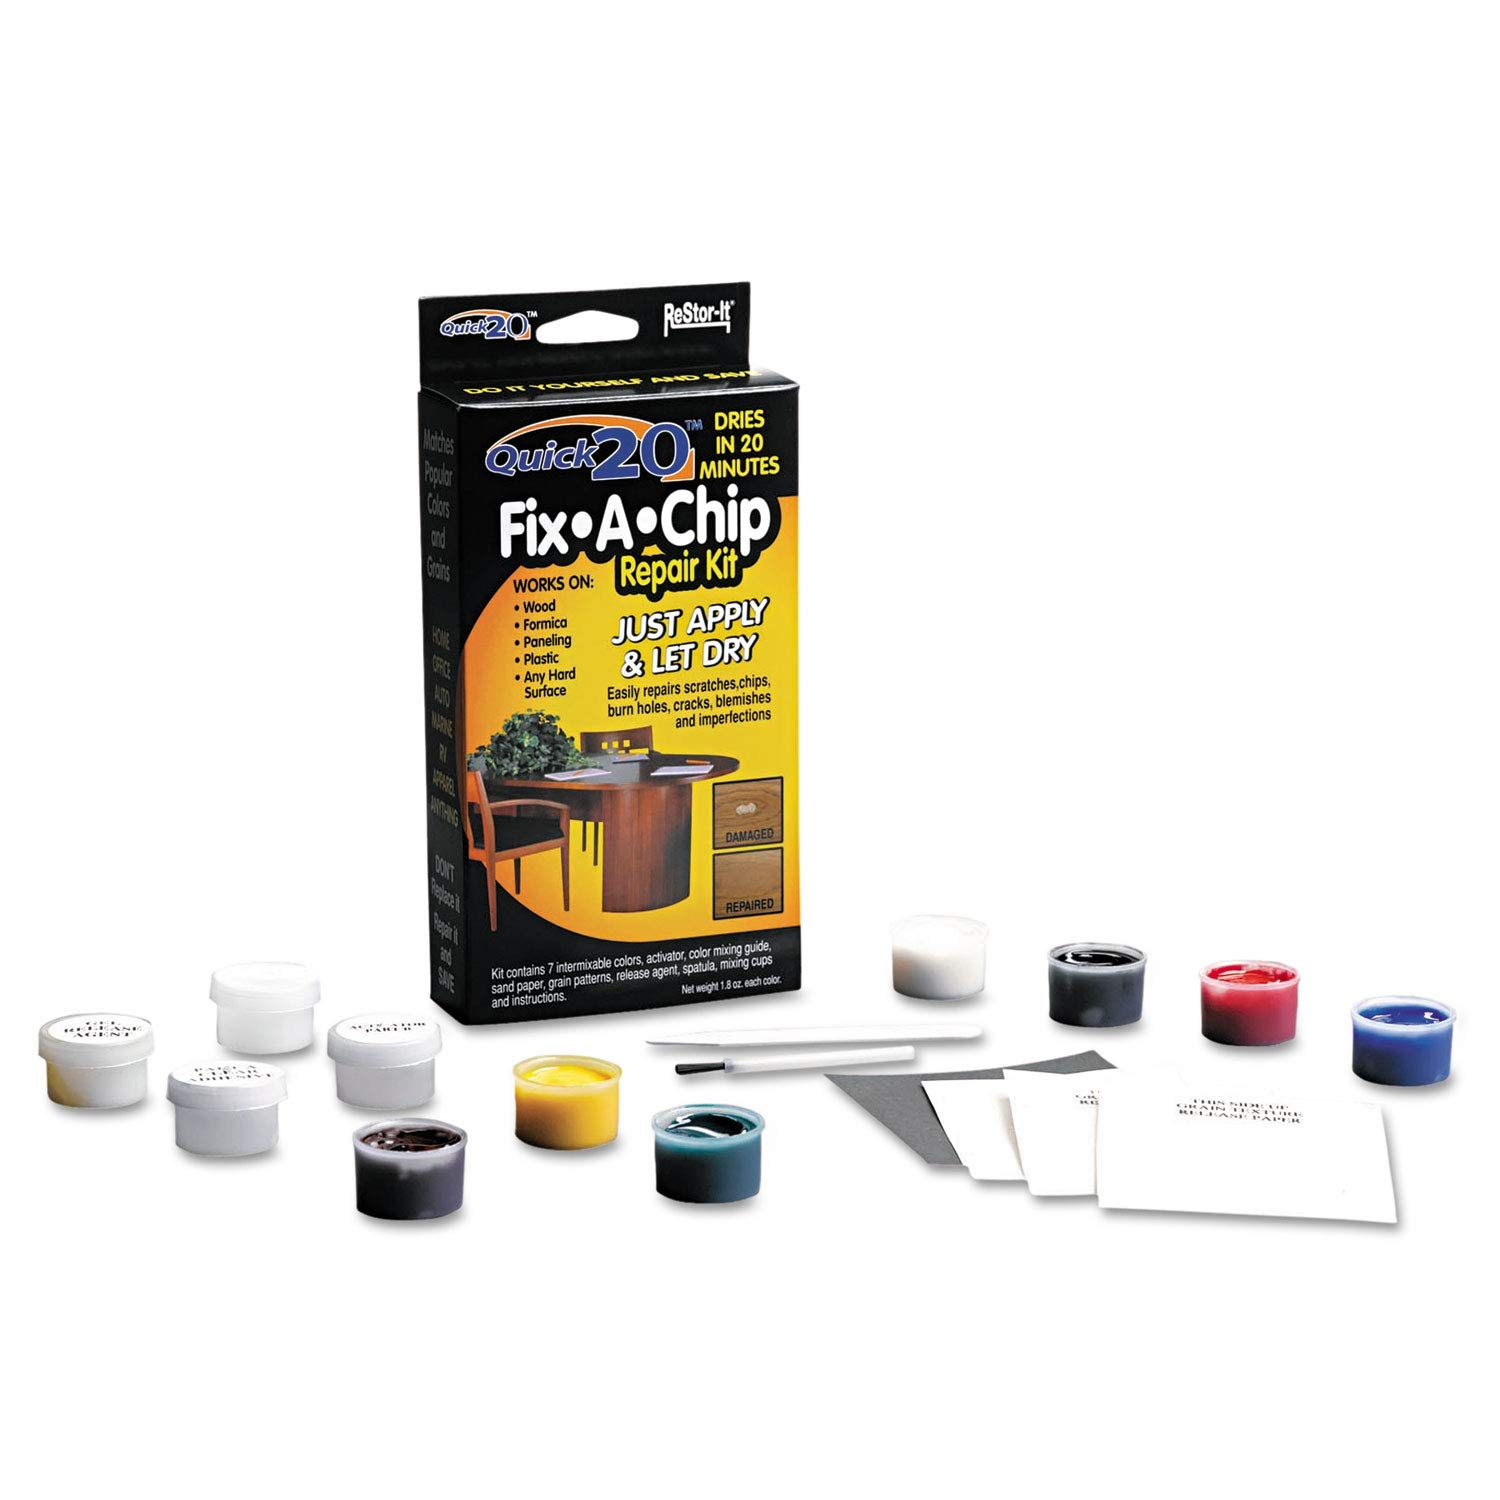 Master Caster ReStor-It Quick 20 Fix-A-Chip Repair Kit - 18084 (Pack of 2) by Master Caster (Image #1)